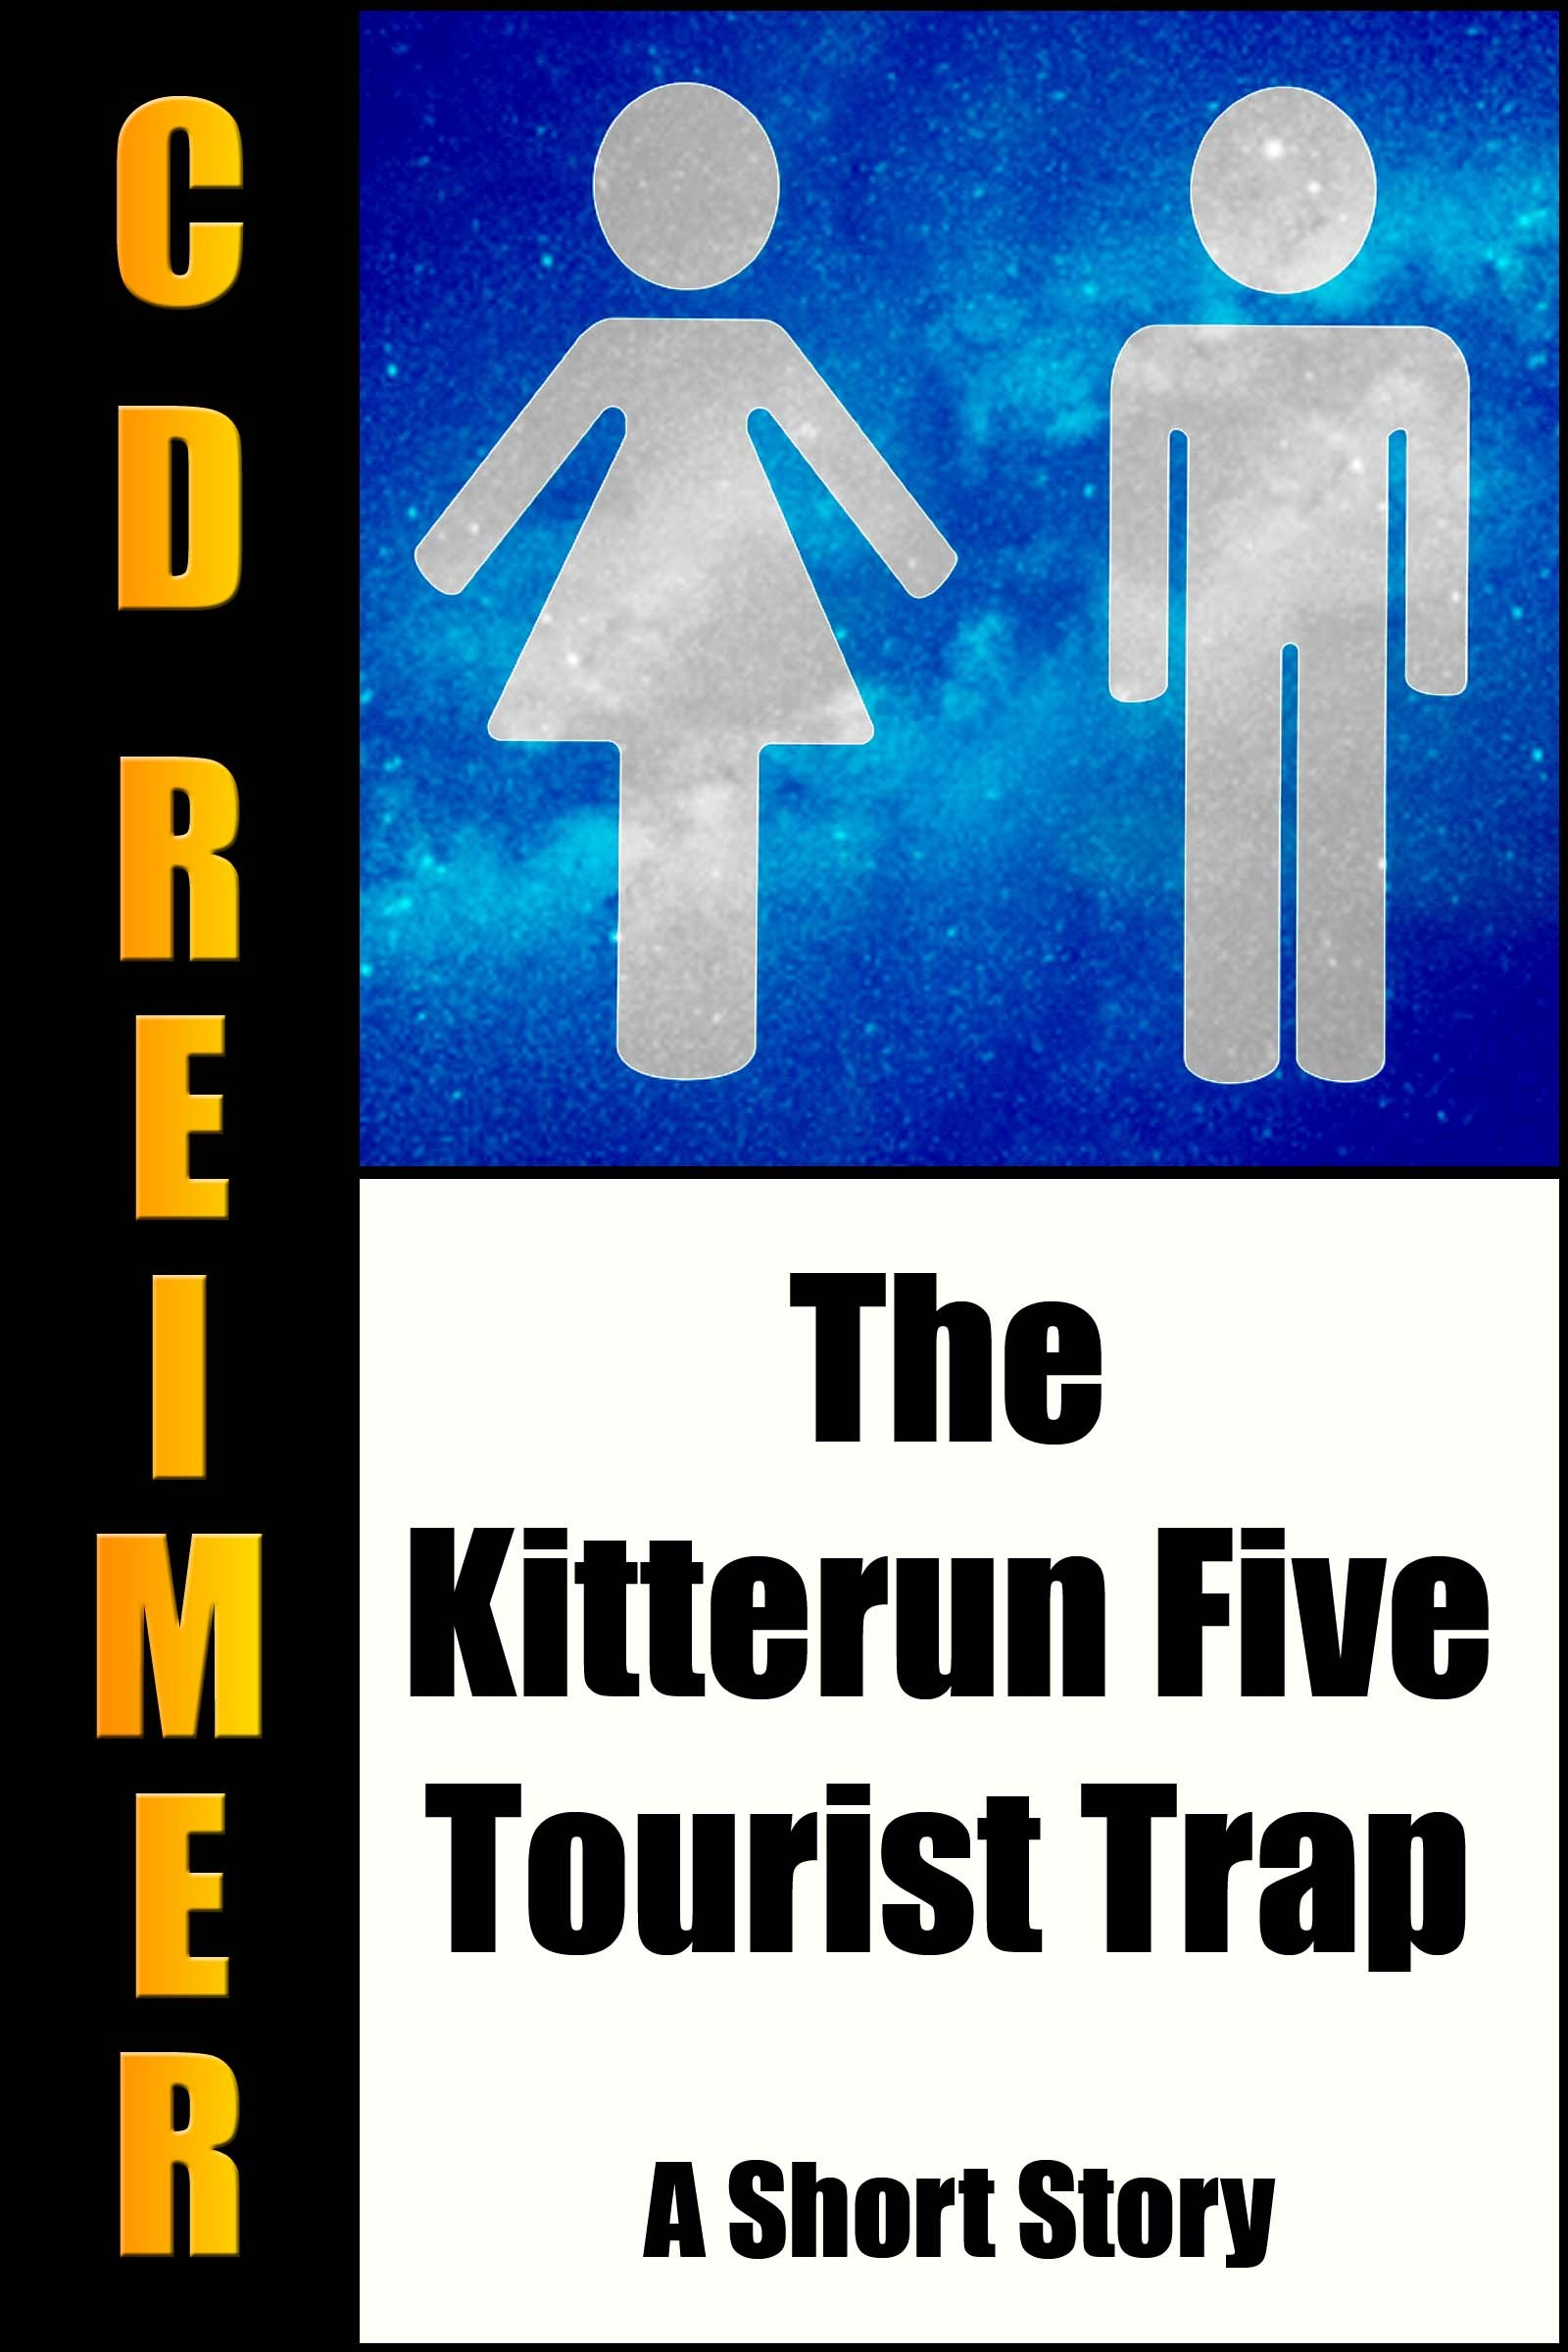 The Kitterun Five Tourist Trap